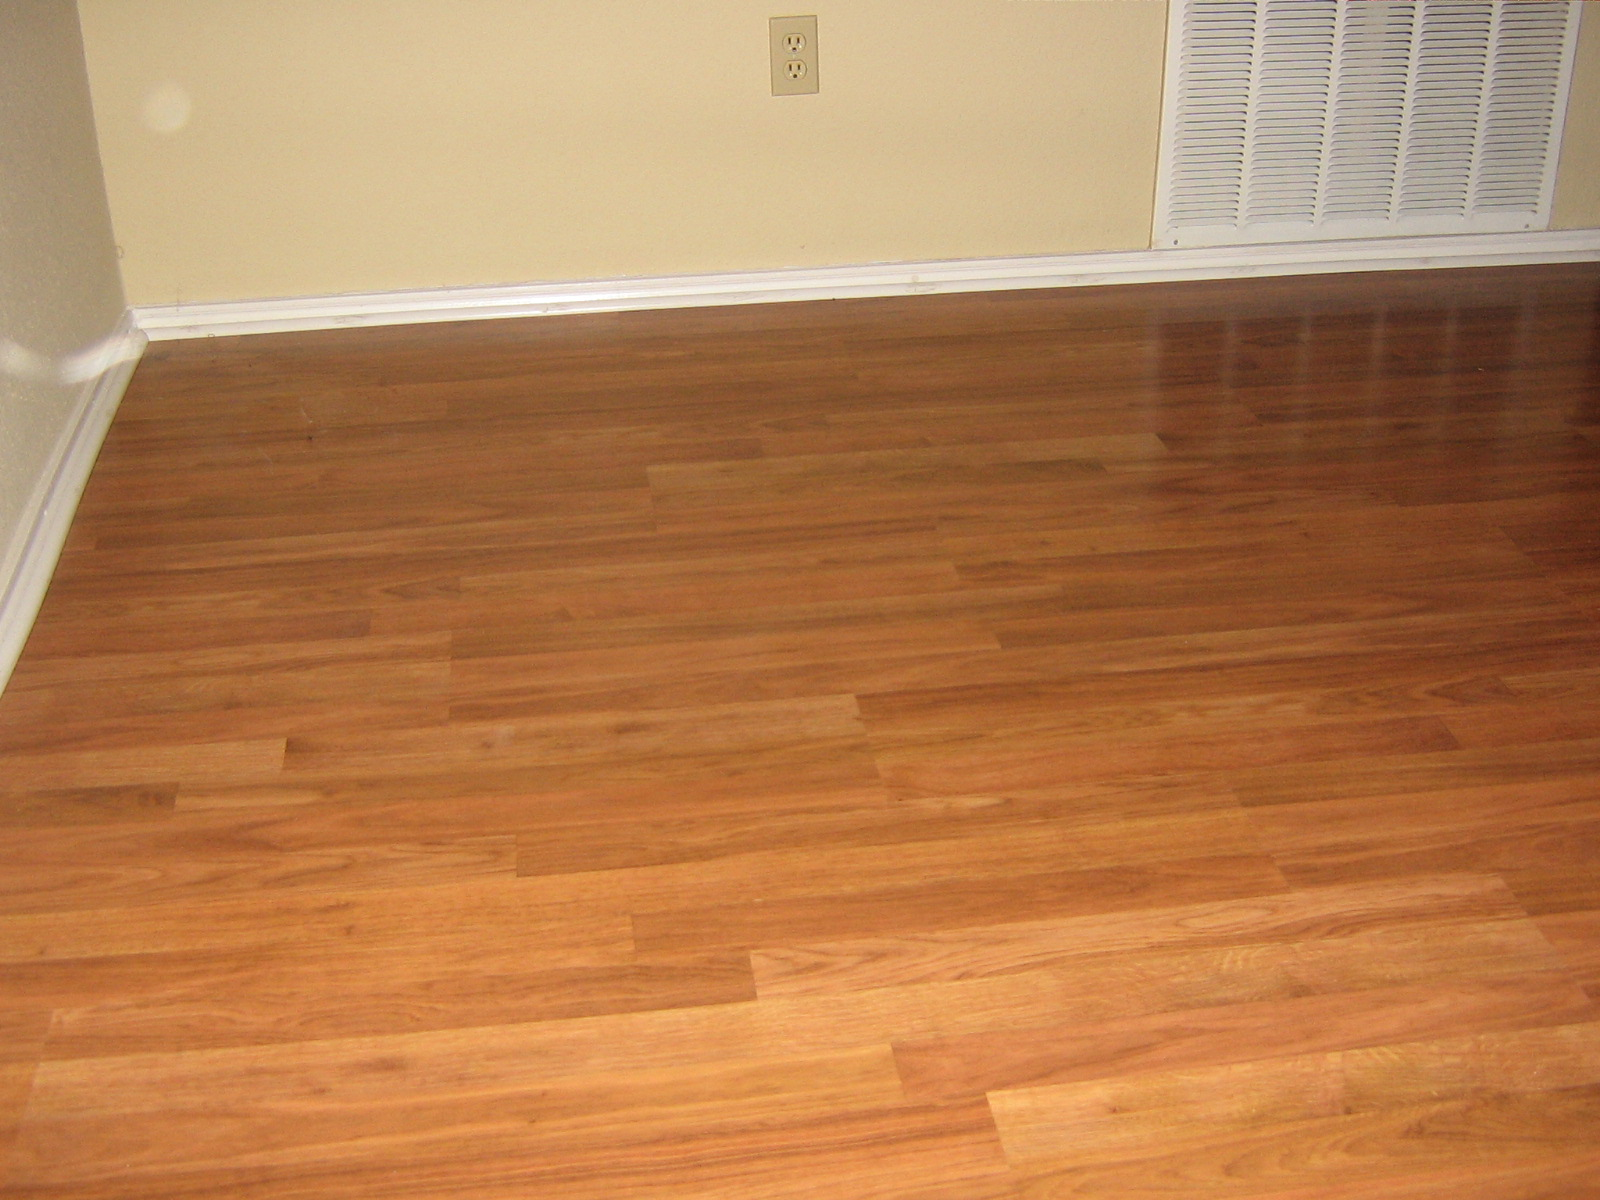 Laminate flooring wood and laminate flooring for Carpet and laminate flooring